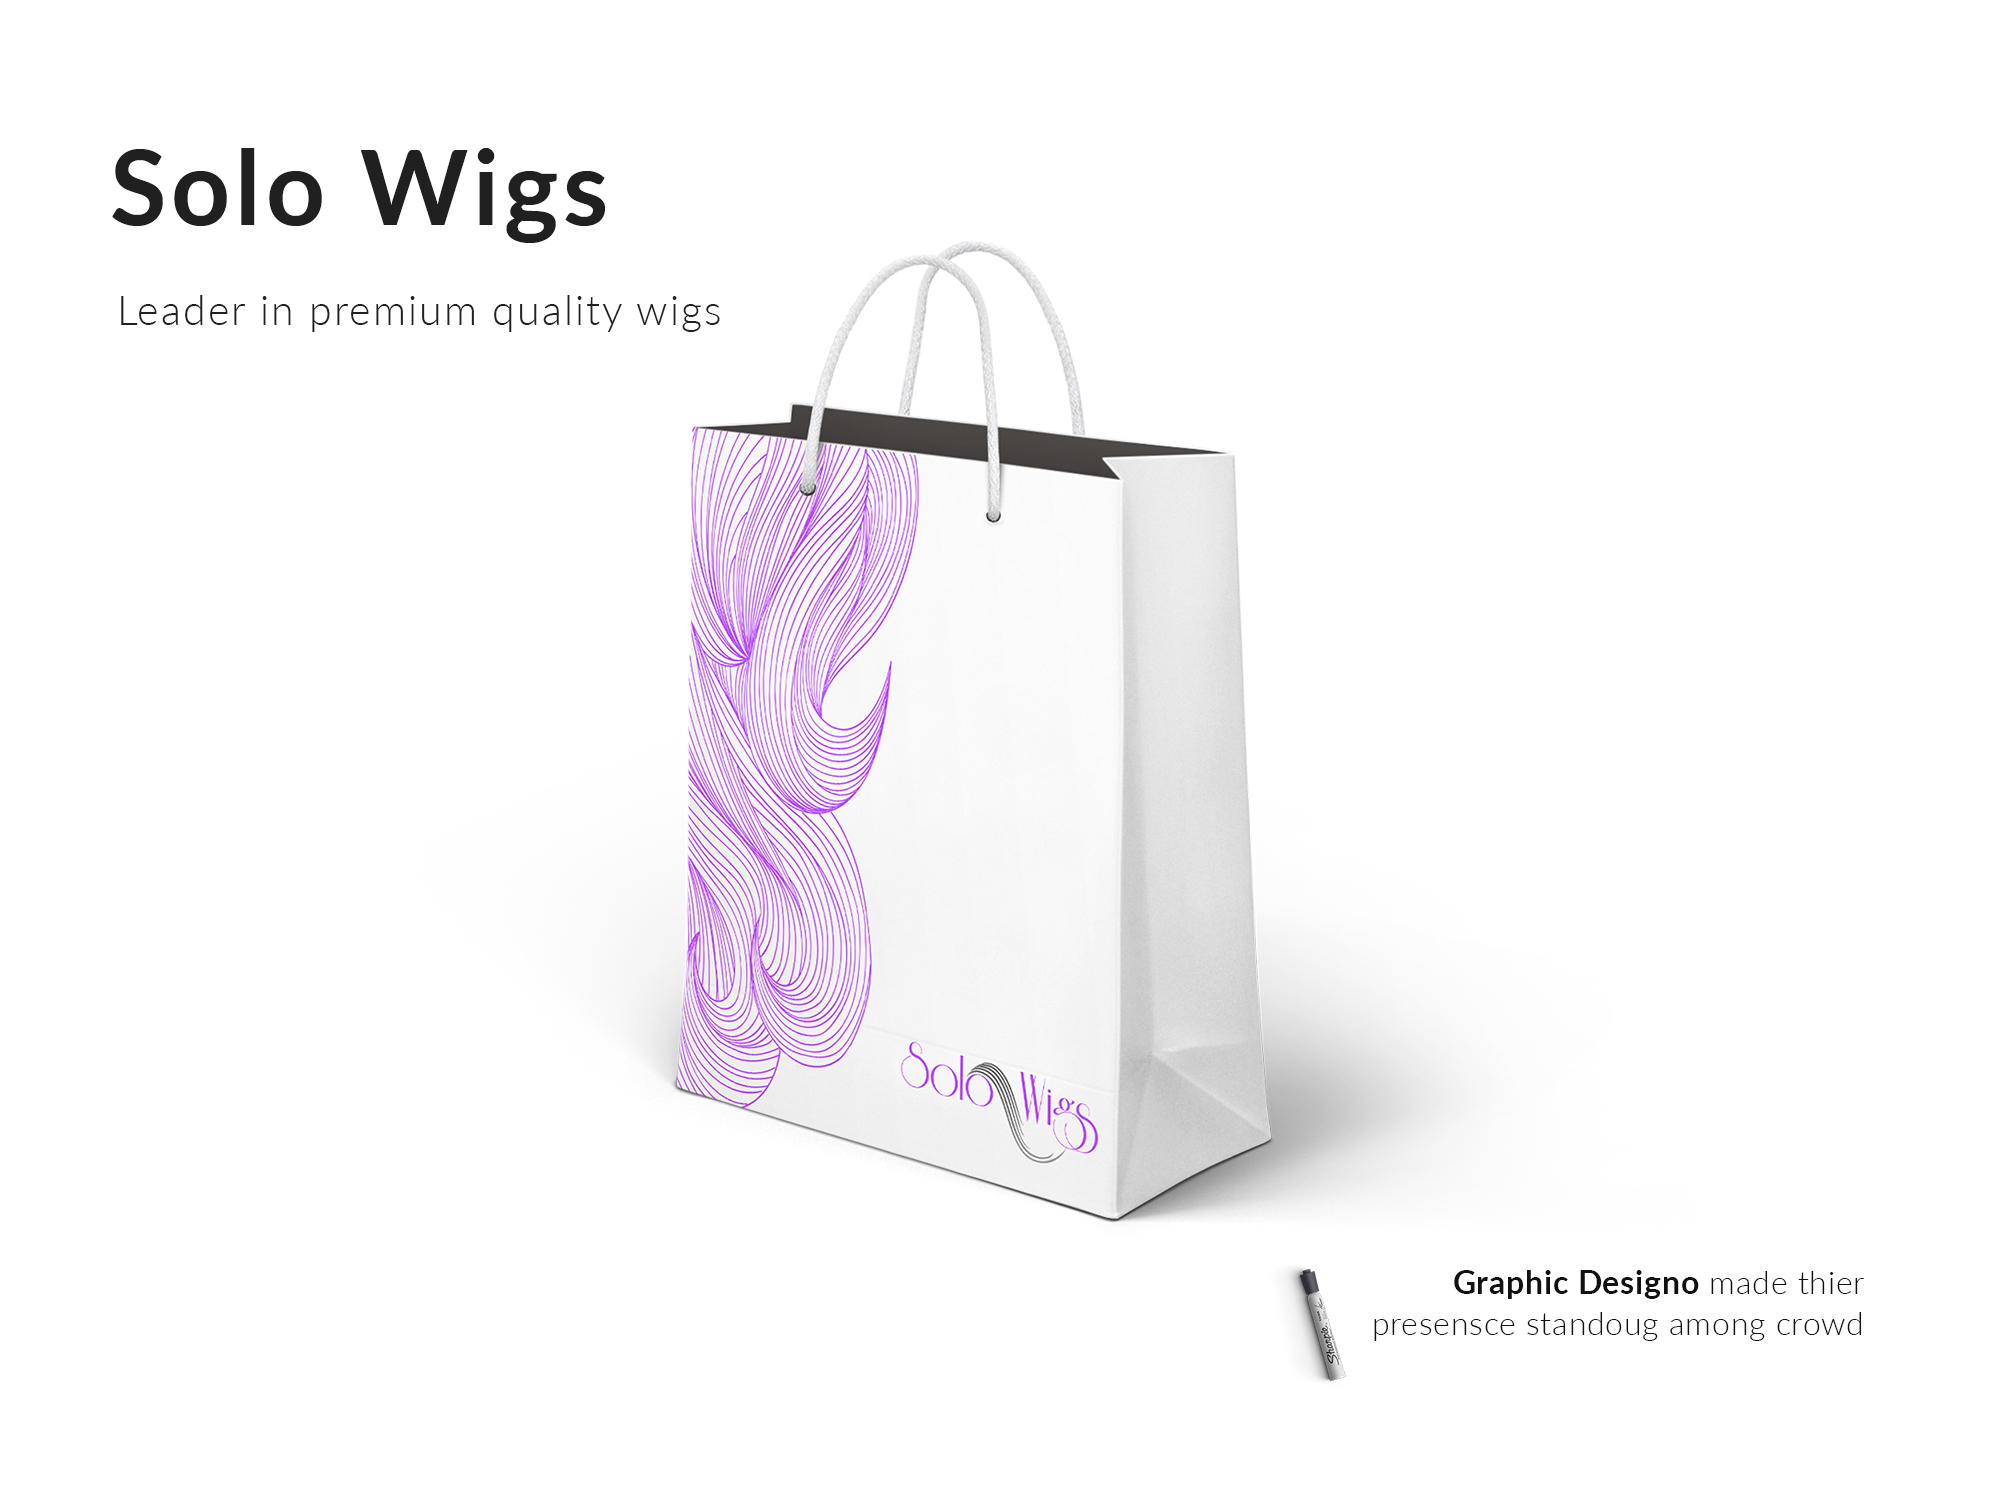 Solog-Wigs-carry-bag